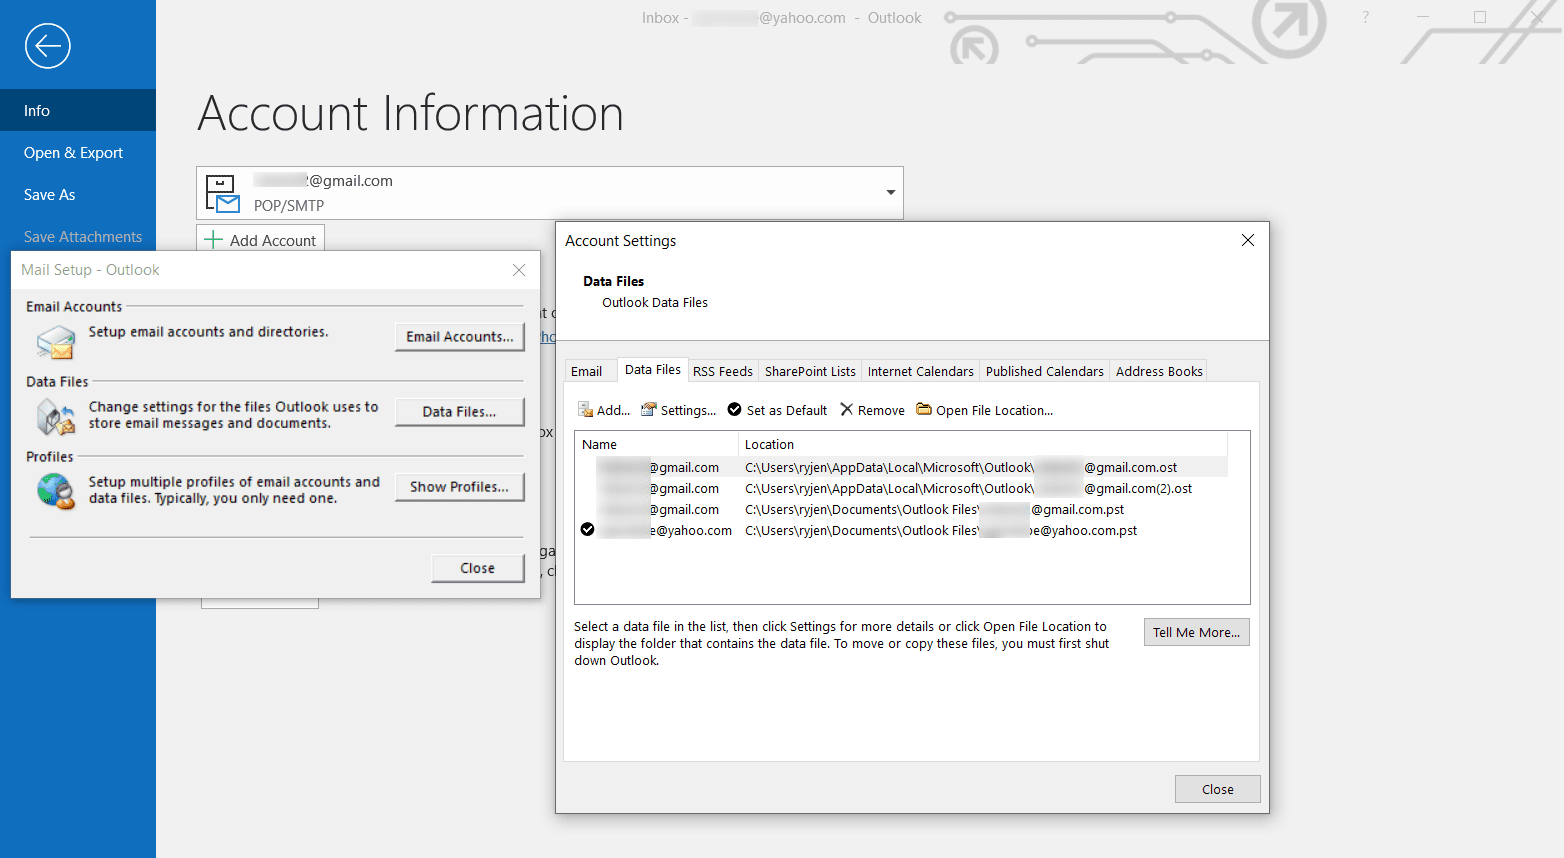 Data Files in Outlook